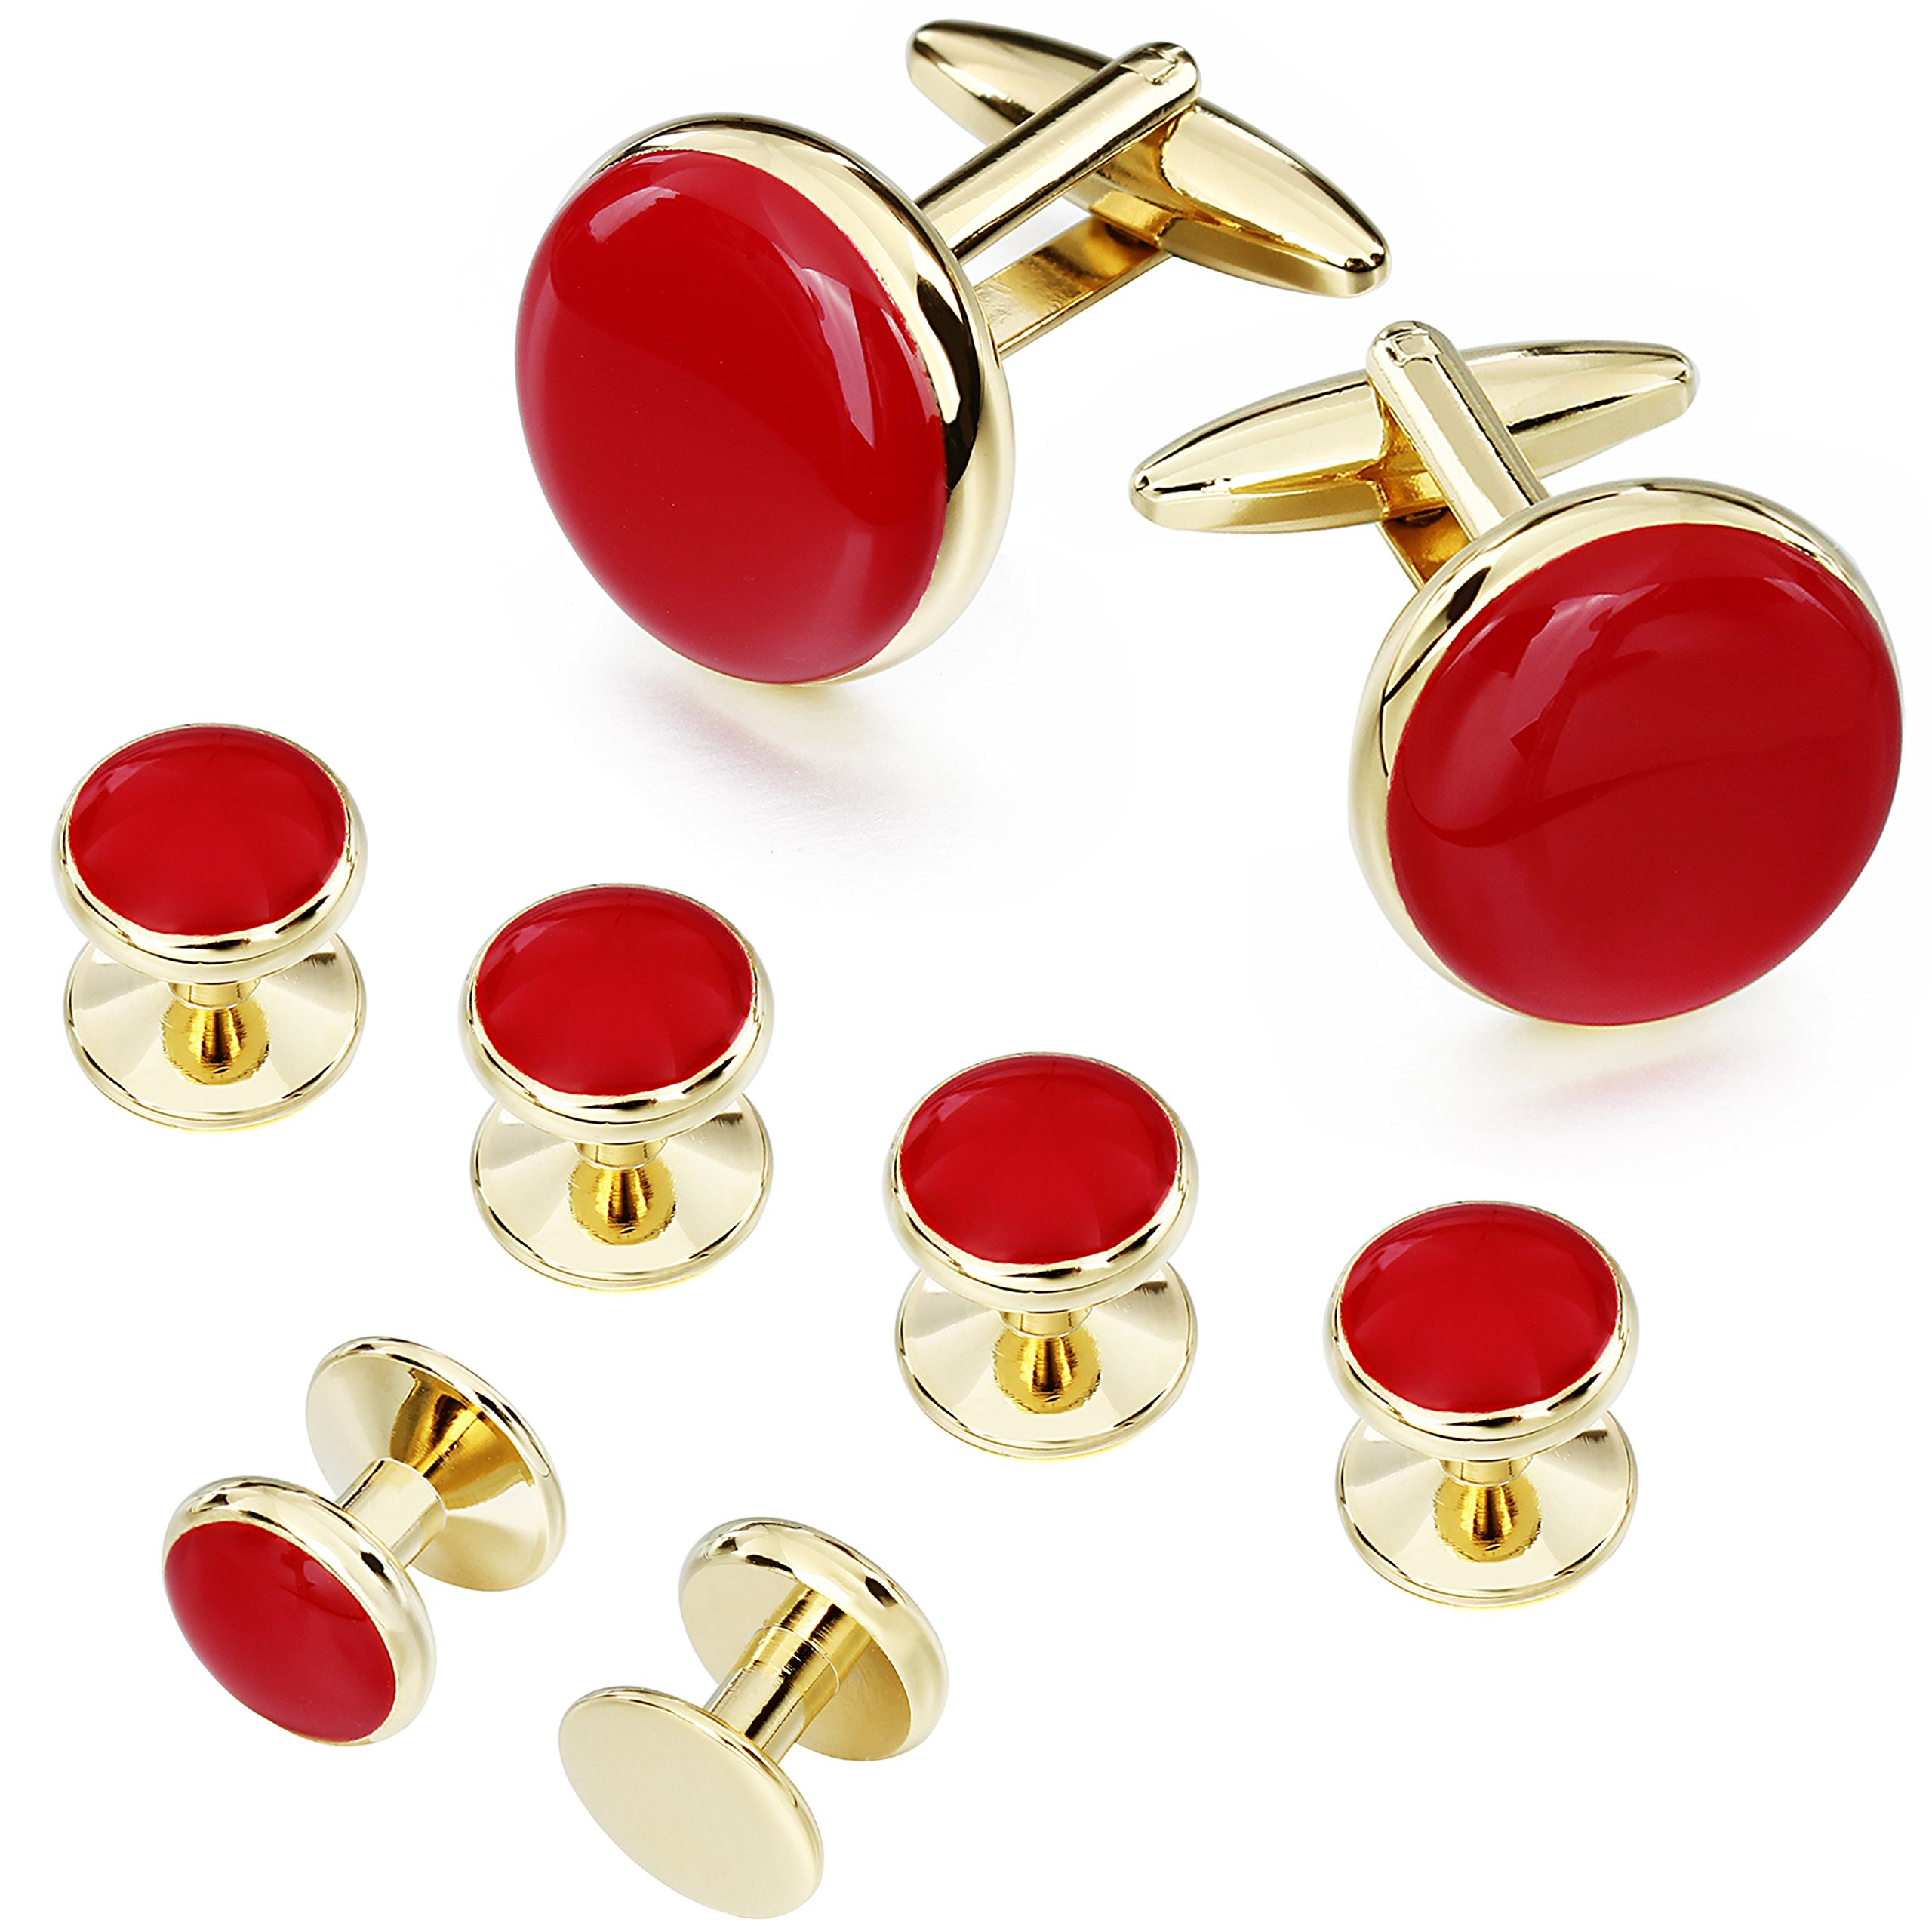 AMITER Cufflinks and Tuxedo Shirt Studs Set for Men Classic Gold and Red Enamel Round Shape with Gift Box - Formal Business Wedding Anniversary Jewelry